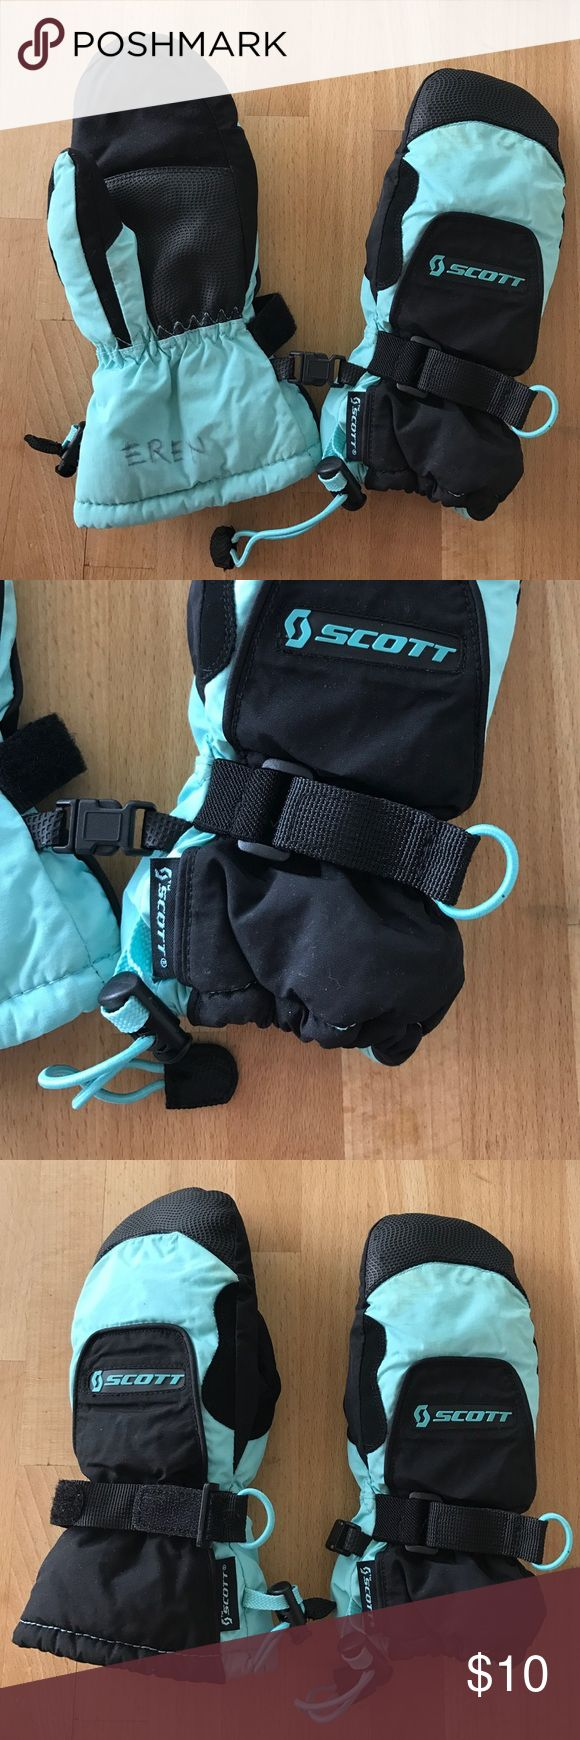 Scott ski / snowboard mittens Only used a couple of times, size S (5) which is good up to age 7-8. Adjustable wrists and buckles to keep them together. My son's name is written inside but not noticeable. Scott Accessories Mittens